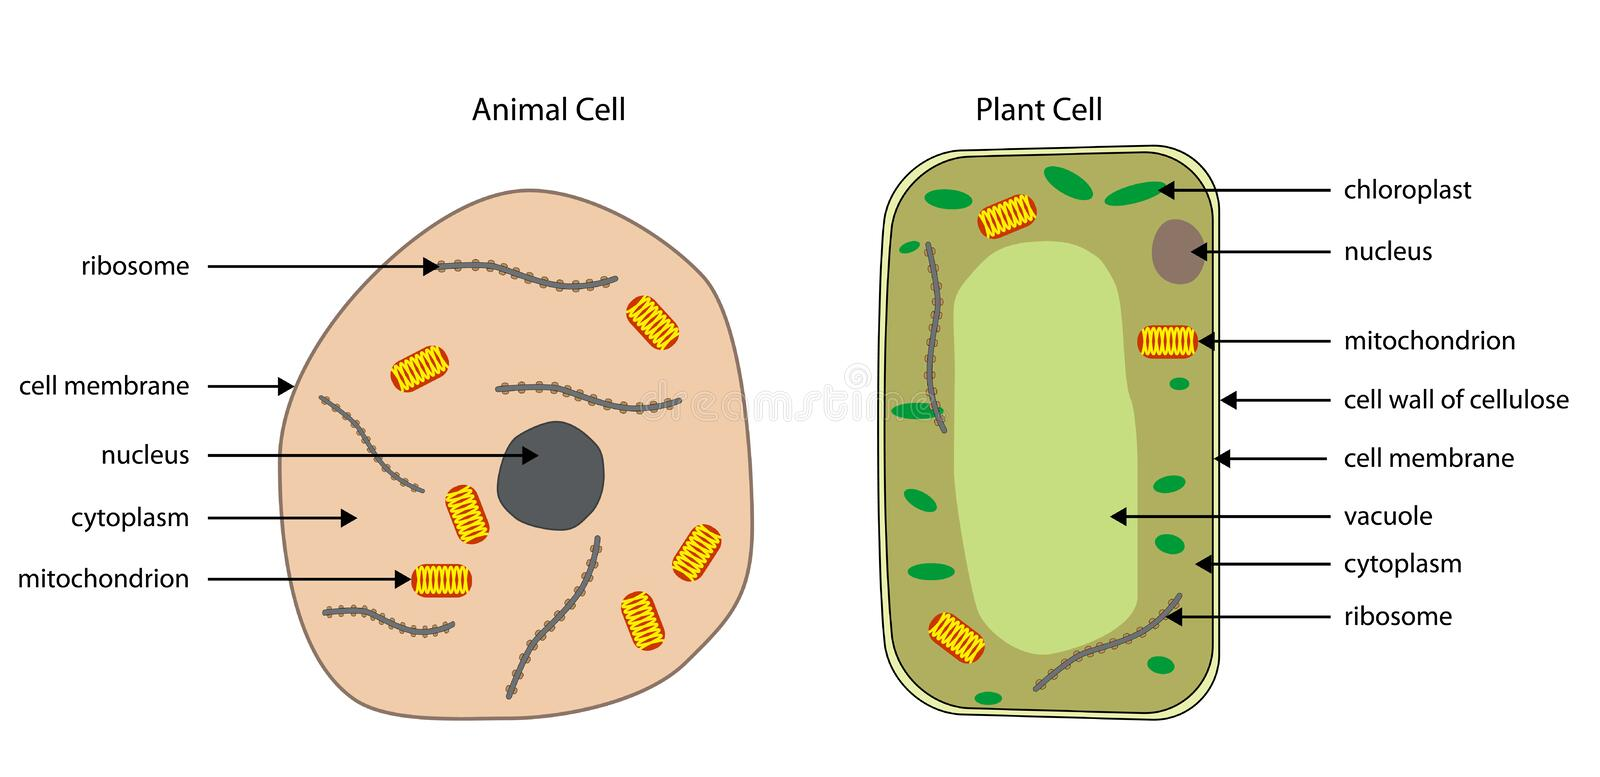 Diagrams of animal and plant cells stock vector illustration of download diagrams of animal and plant cells stock vector illustration of biology plant ccuart Images